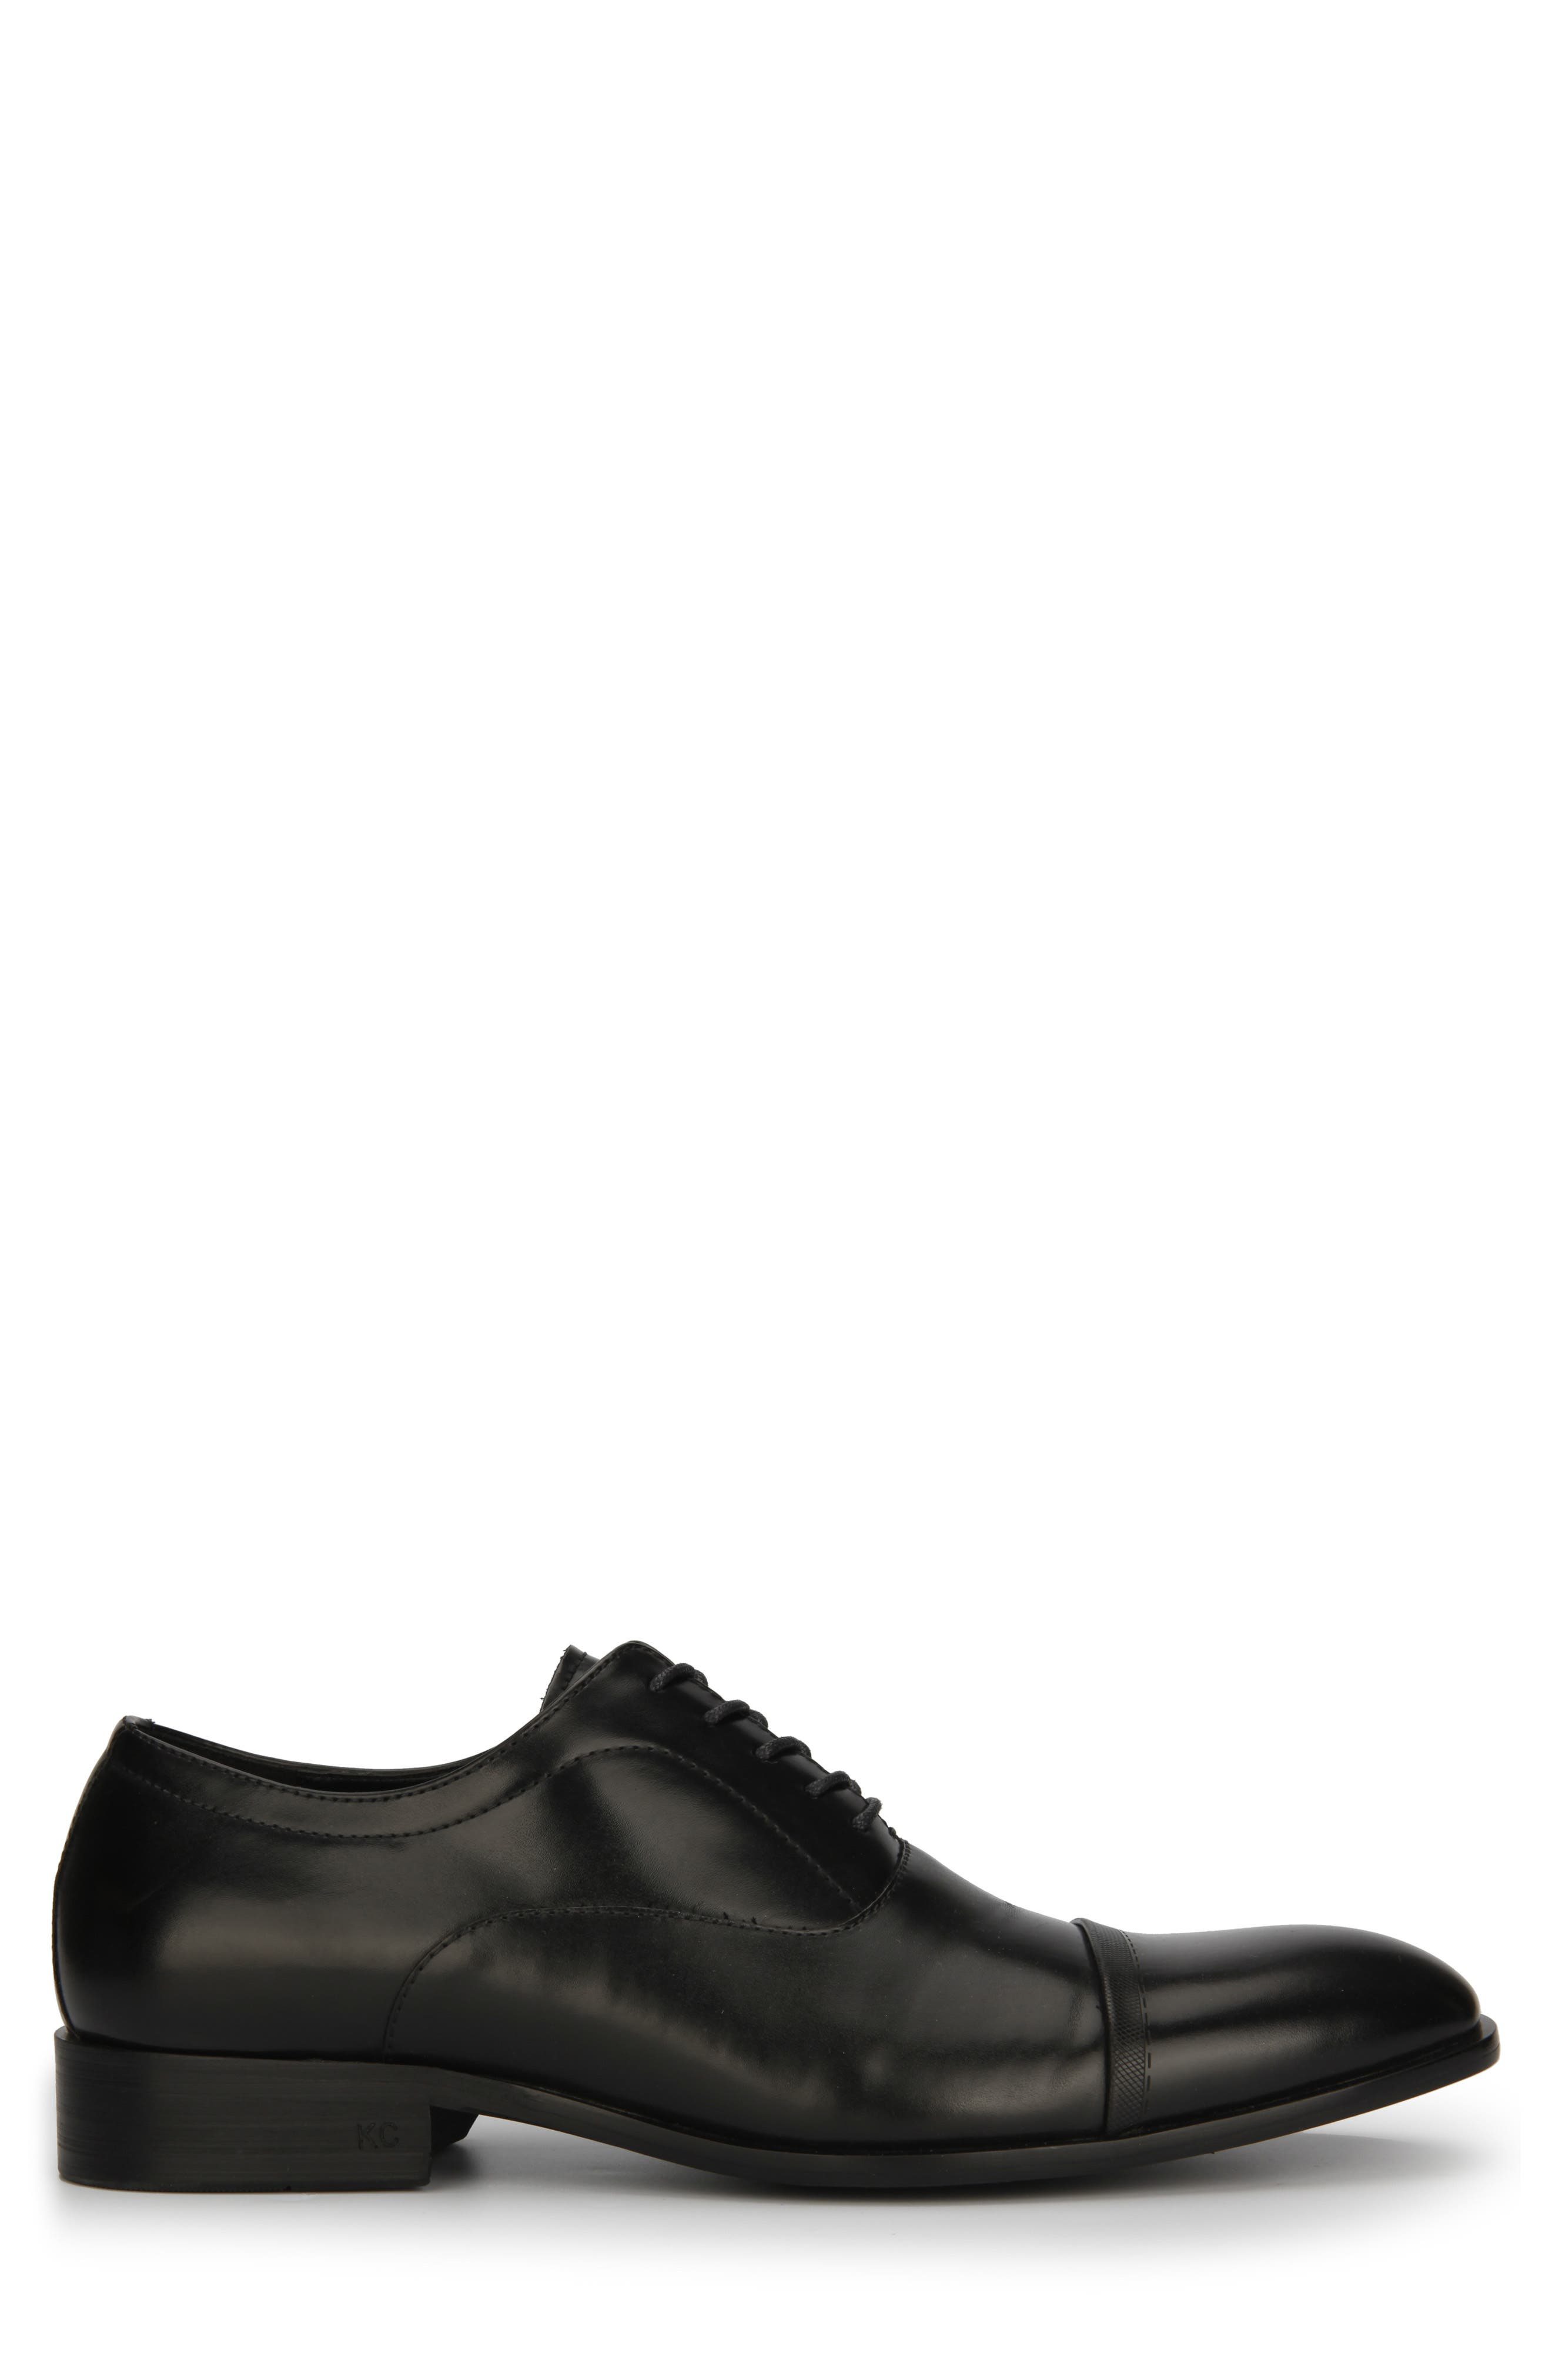 REACTION KENNETH COLE, Robson Cap Toe Oxford, Alternate thumbnail 2, color, BLACK